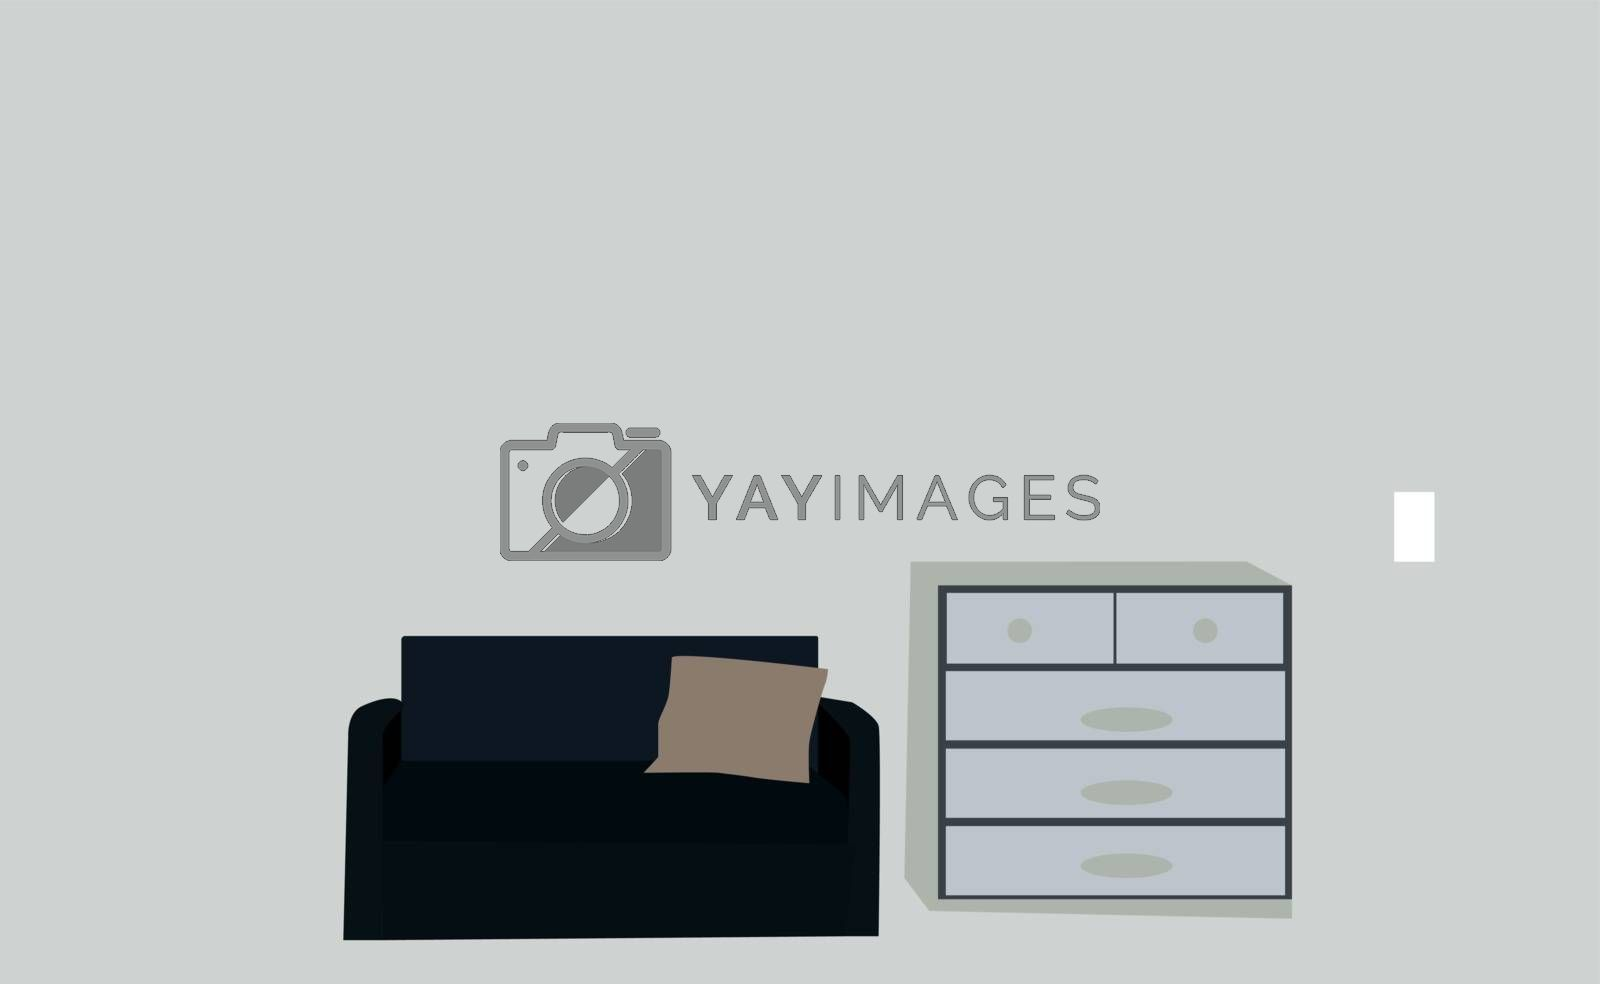 Sofa and a wardrobe, illustration, vector on white background.